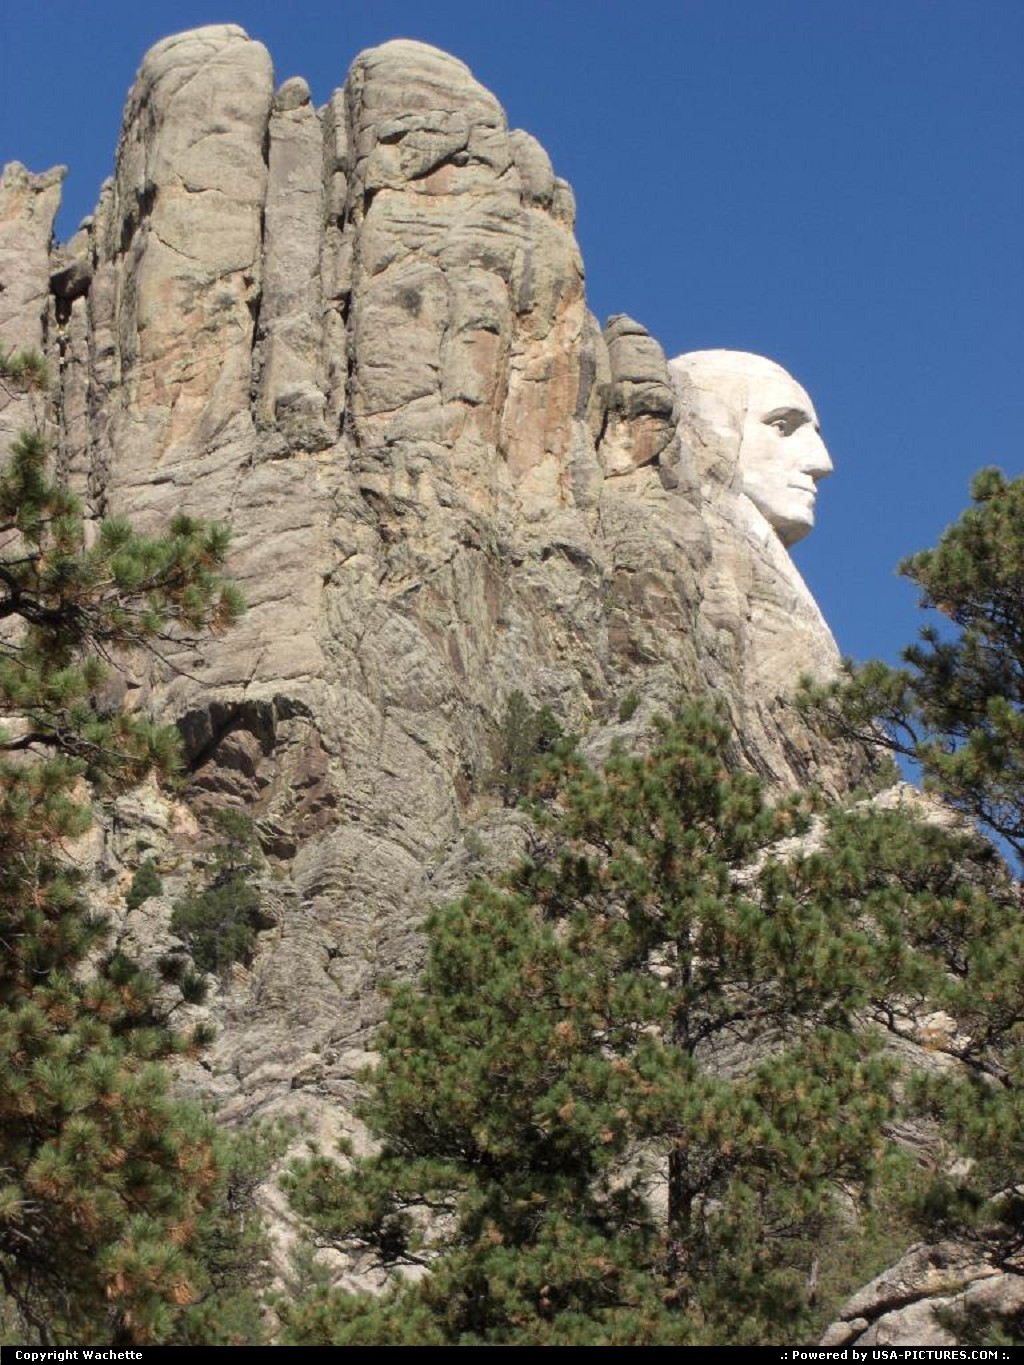 Picture by Wachette:Not in a citySouth-dakotamount rushmore